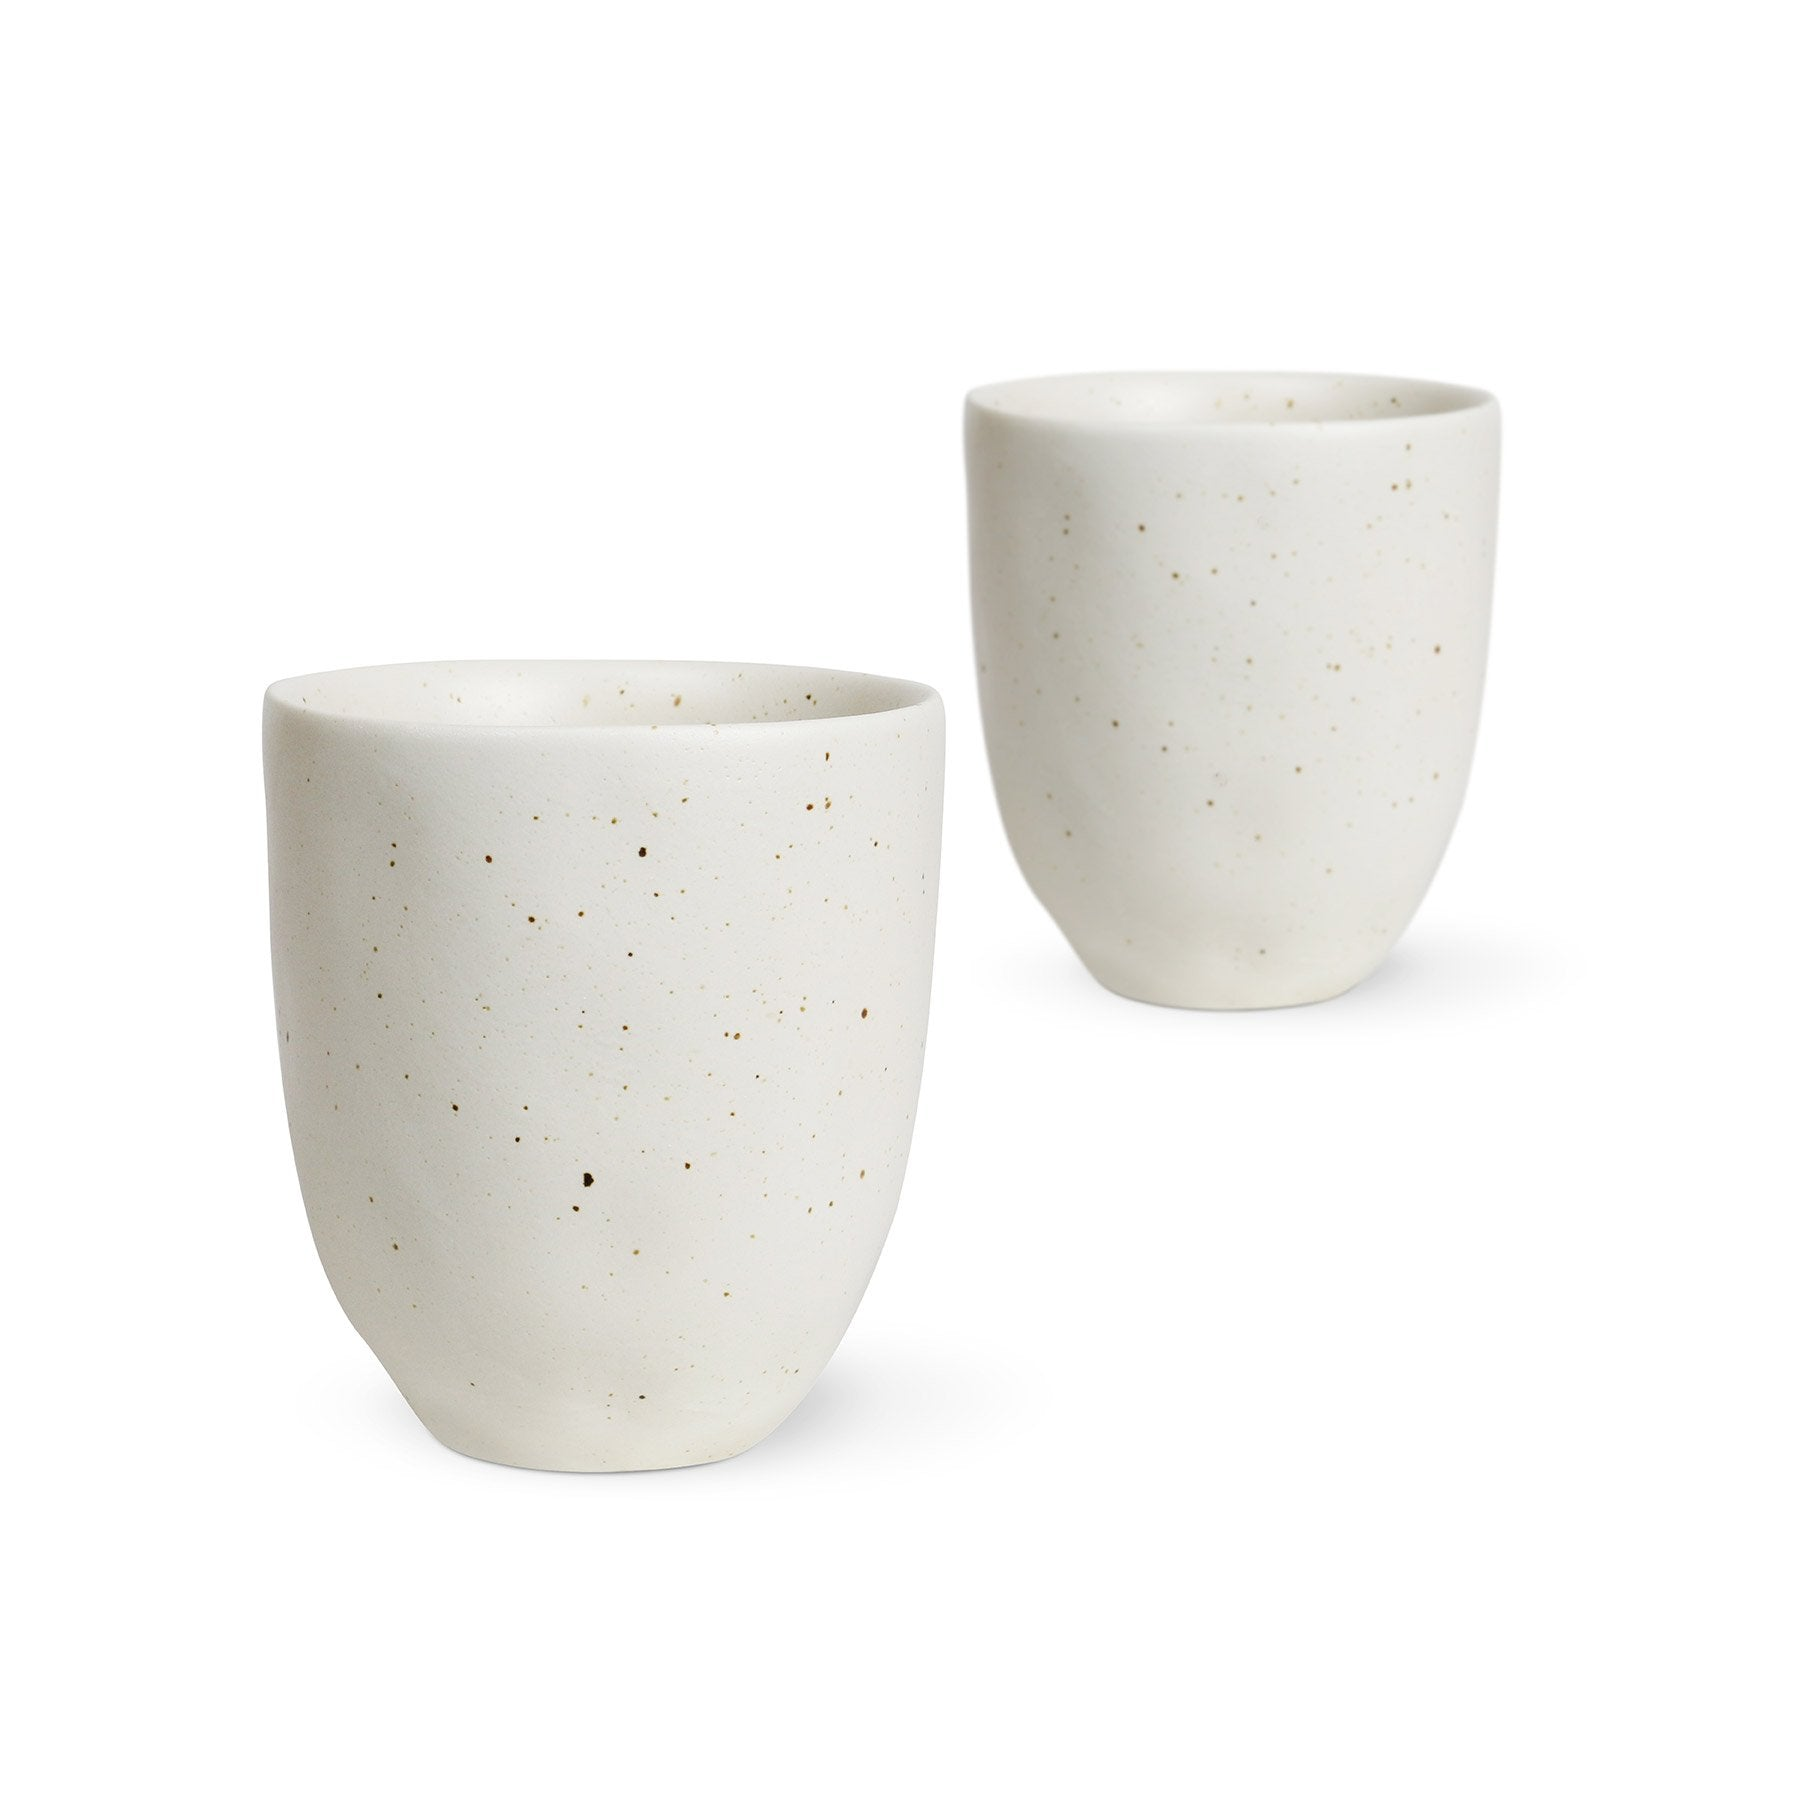 Latte Mug Set of 2 - Natural Earth